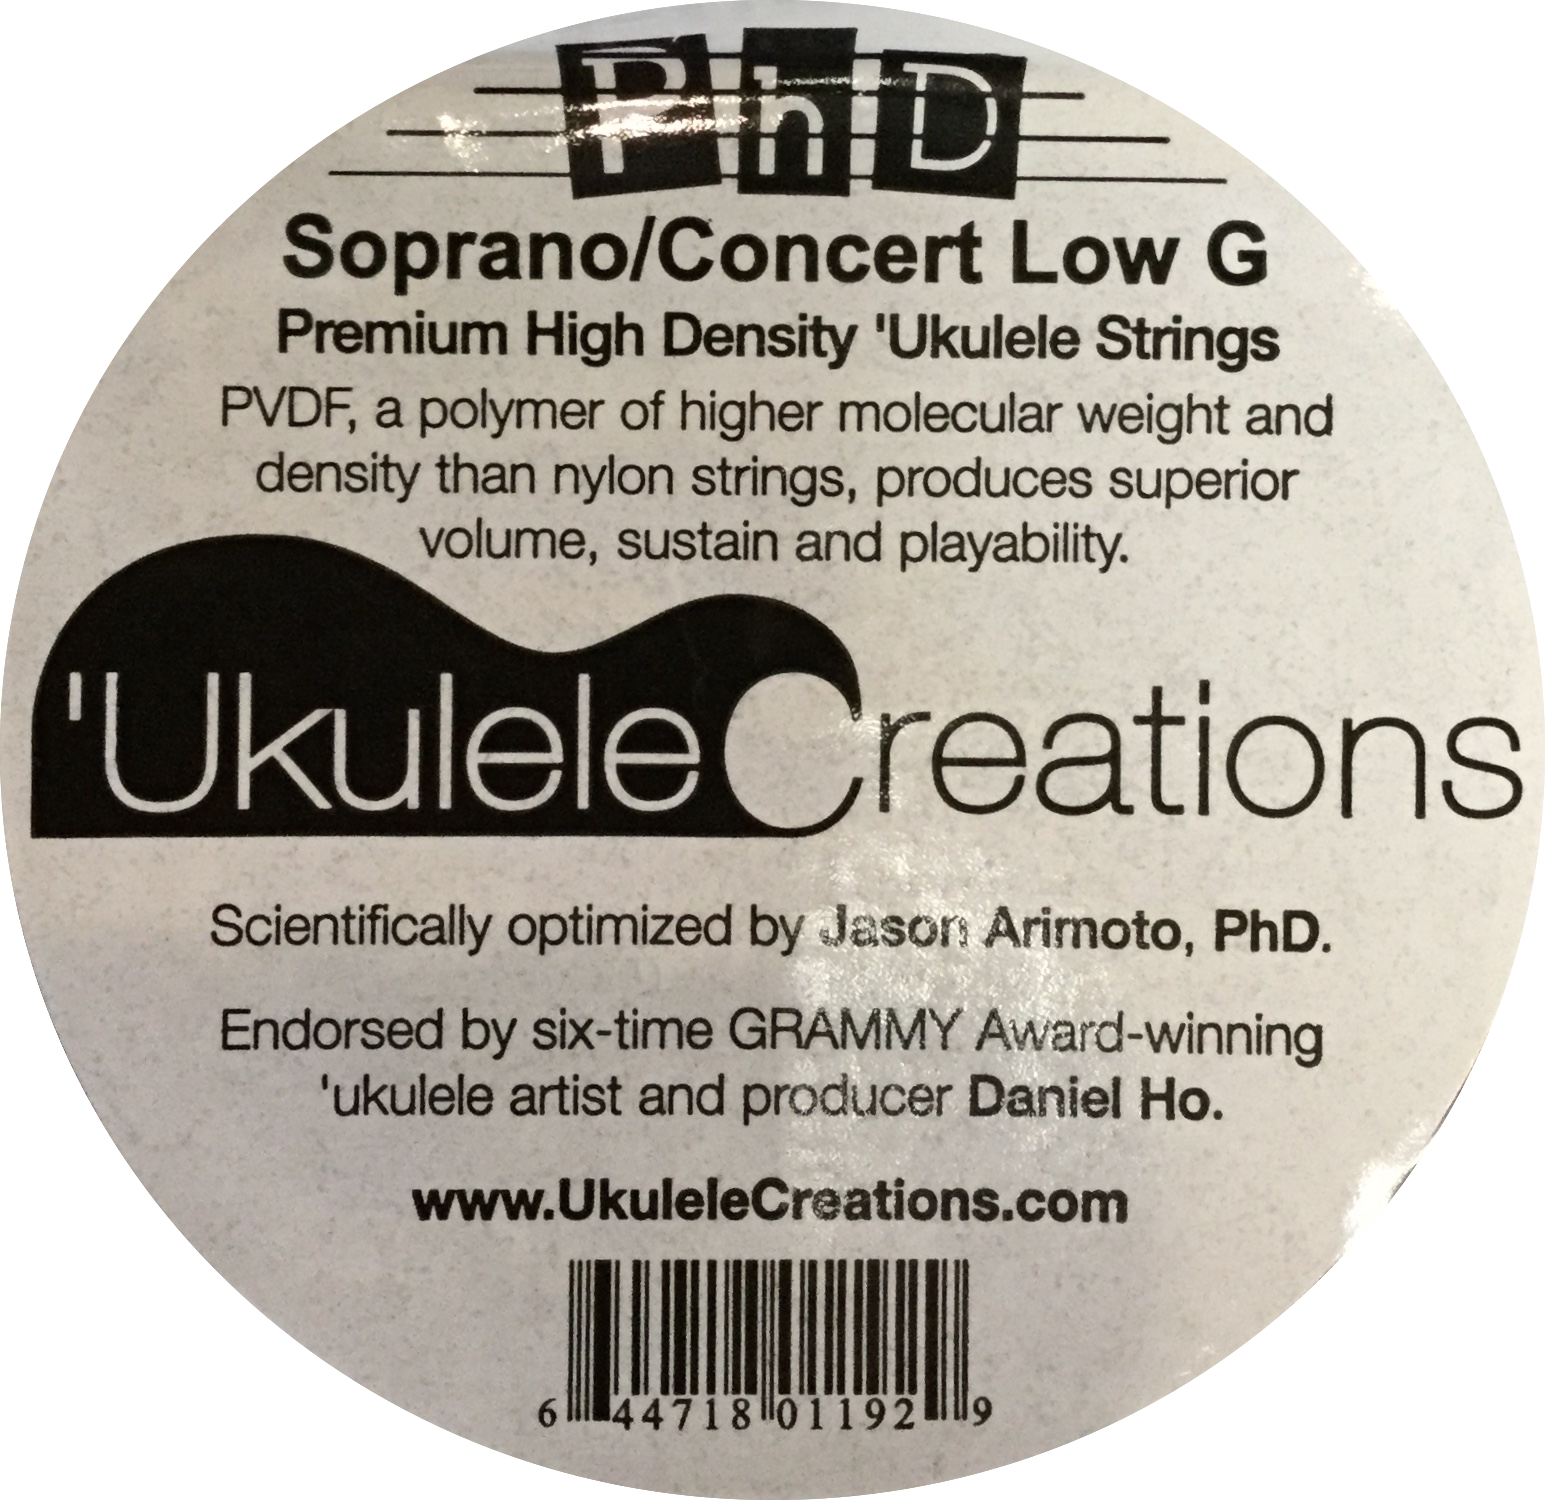 PhD Soprano/Concert Low G Ukulele Strings